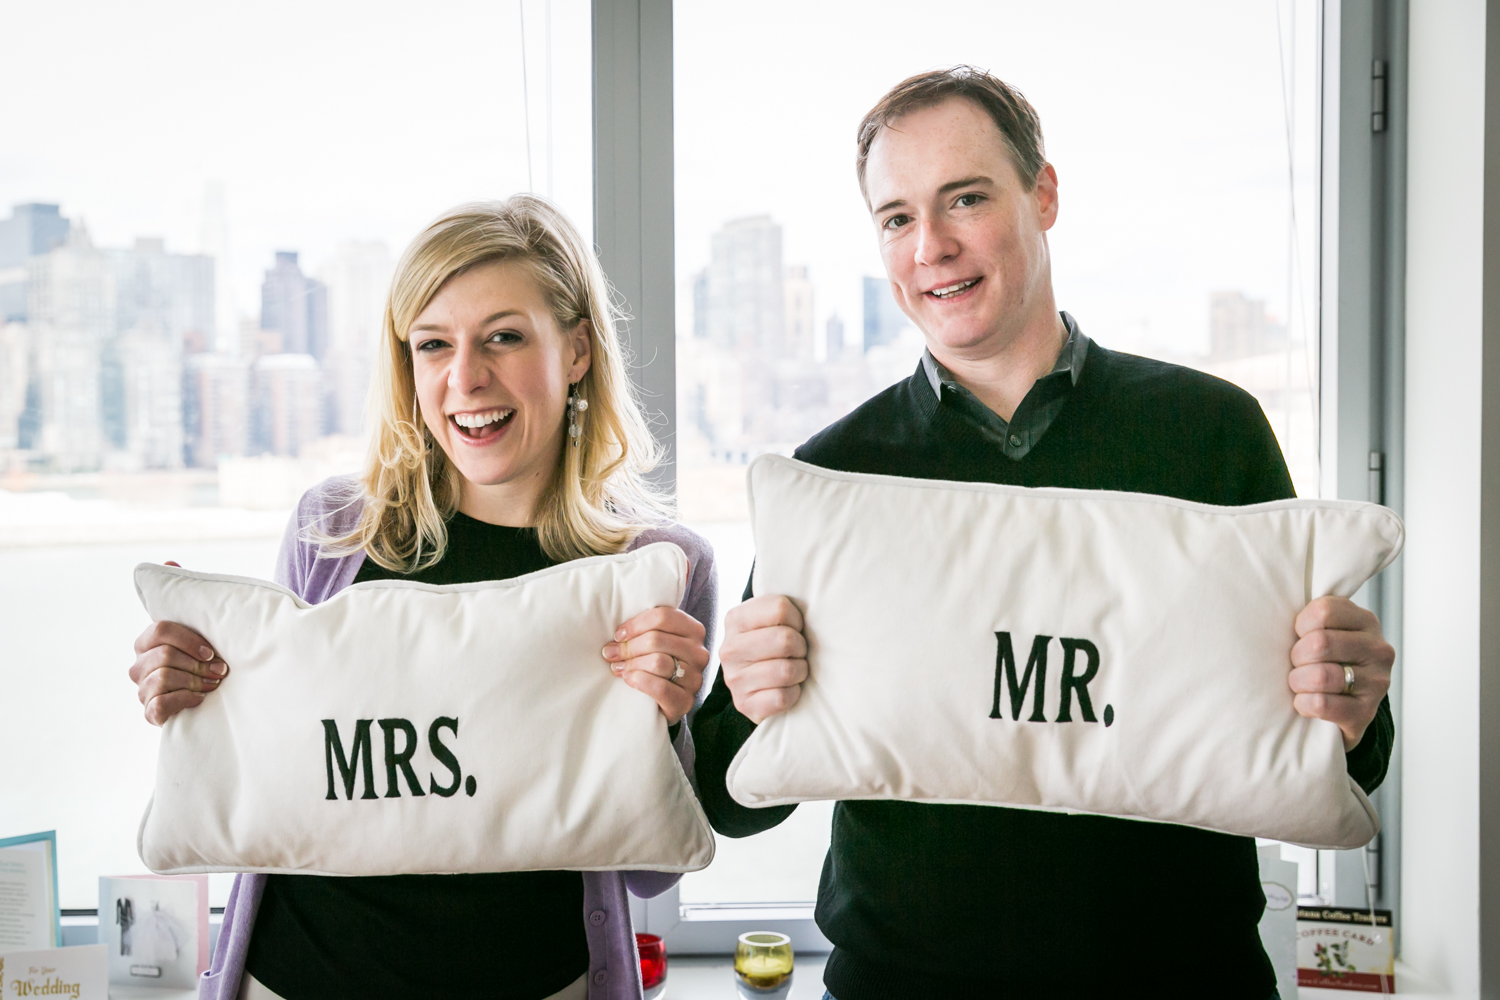 Bride and groom holding Mr. and Mrs. pillows at a Long Island City wedding brunch